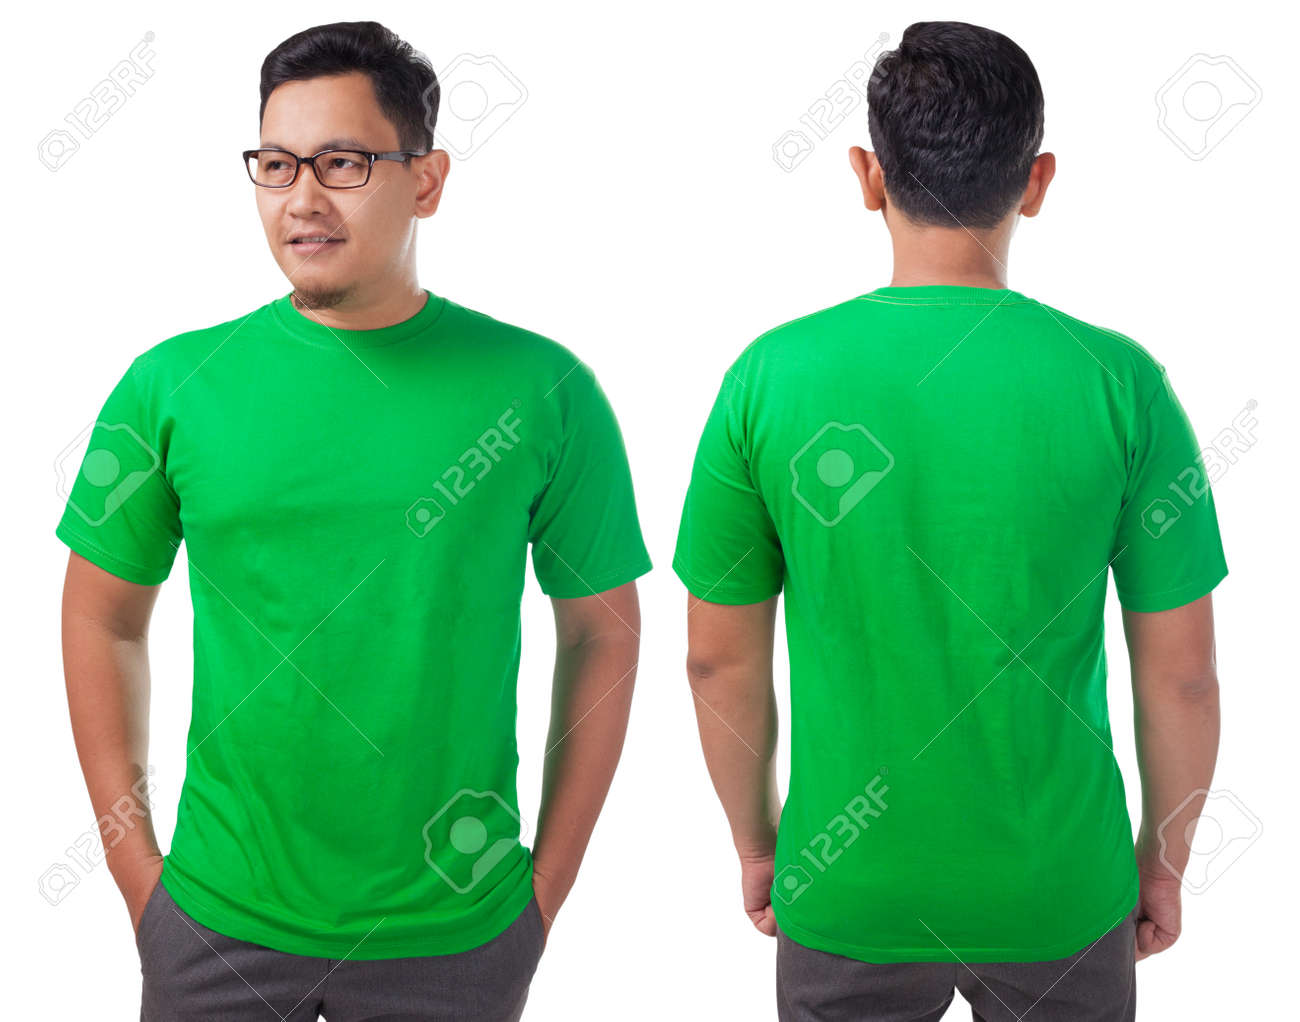 Green T Shirt Mock Up Front And Back View Isolated Male Model